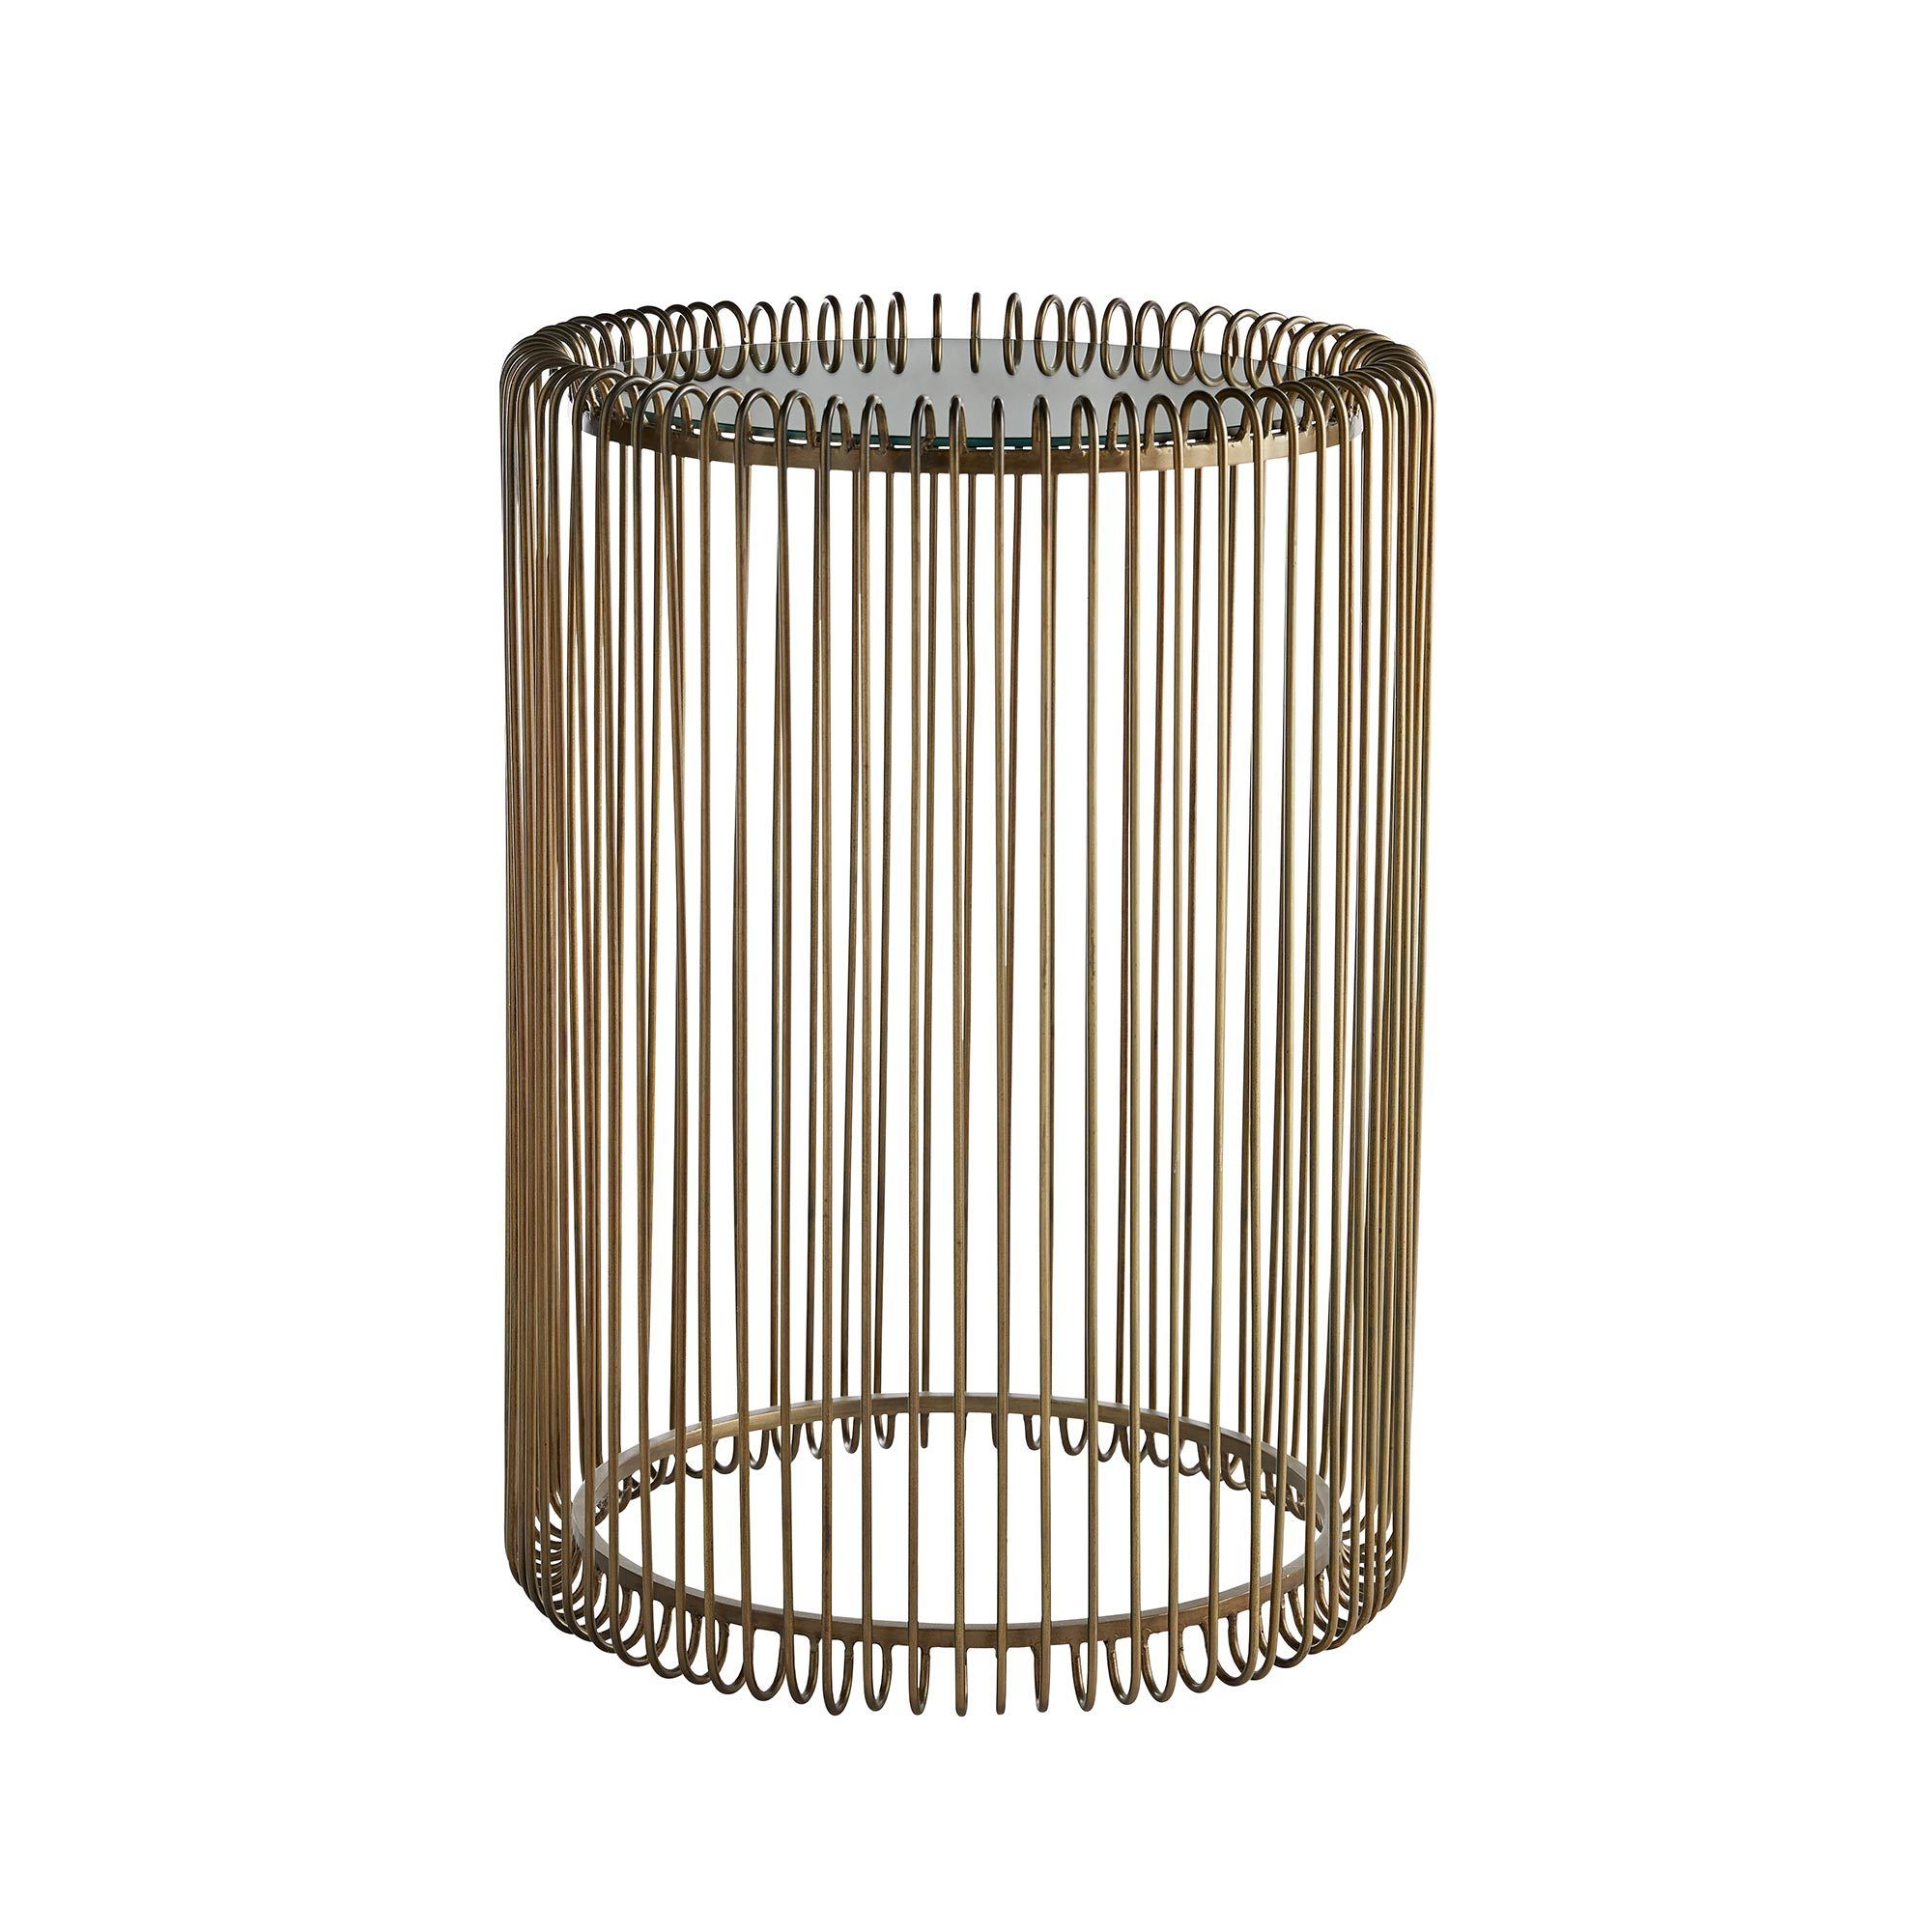 oren side table side table antique mirror glass on exclusive modern nesting end tables design ideas very functional furnishings id=98576